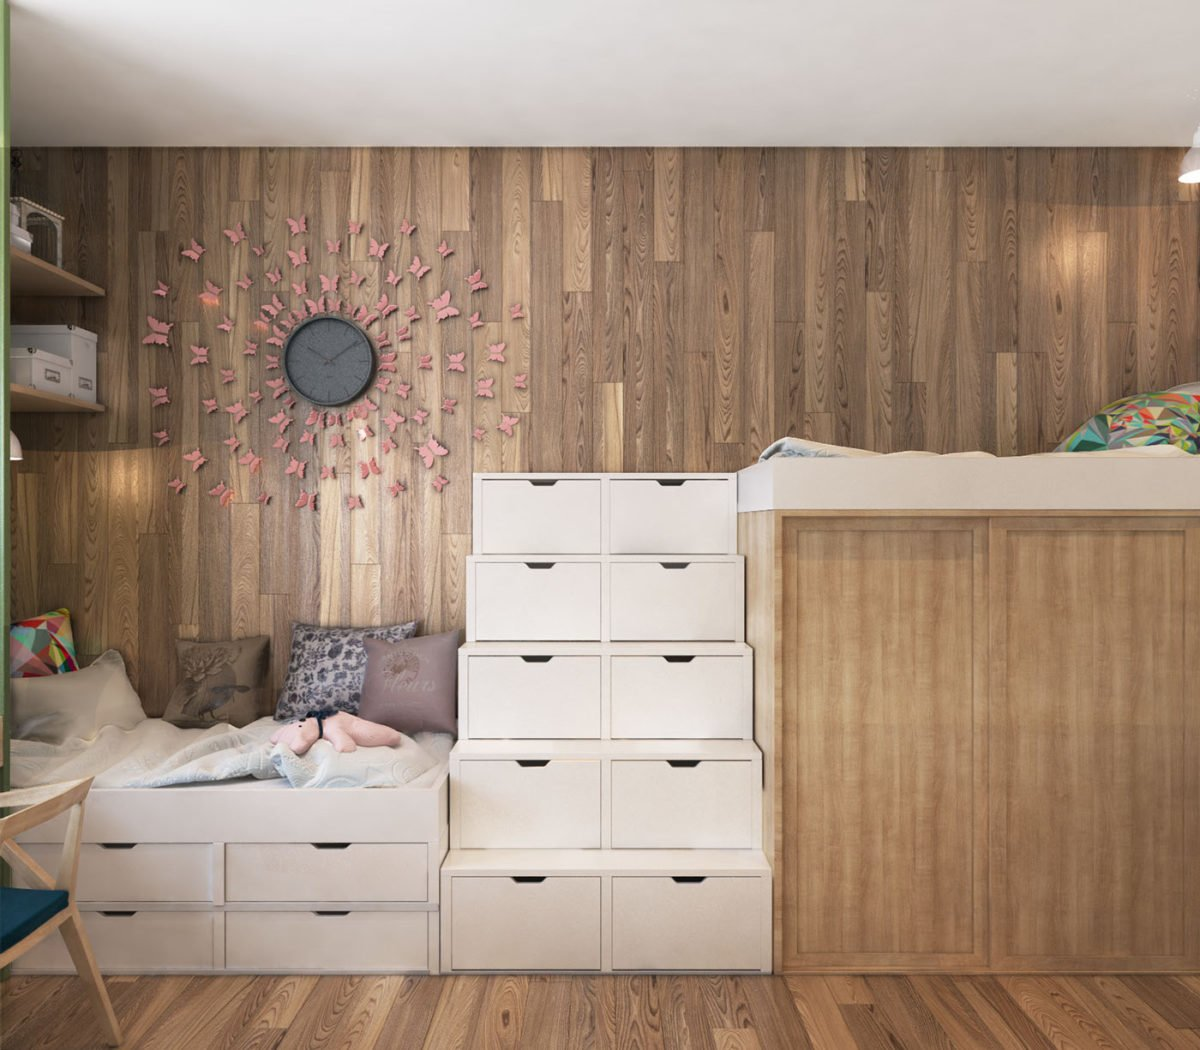 10natural-wood-wall-paneling